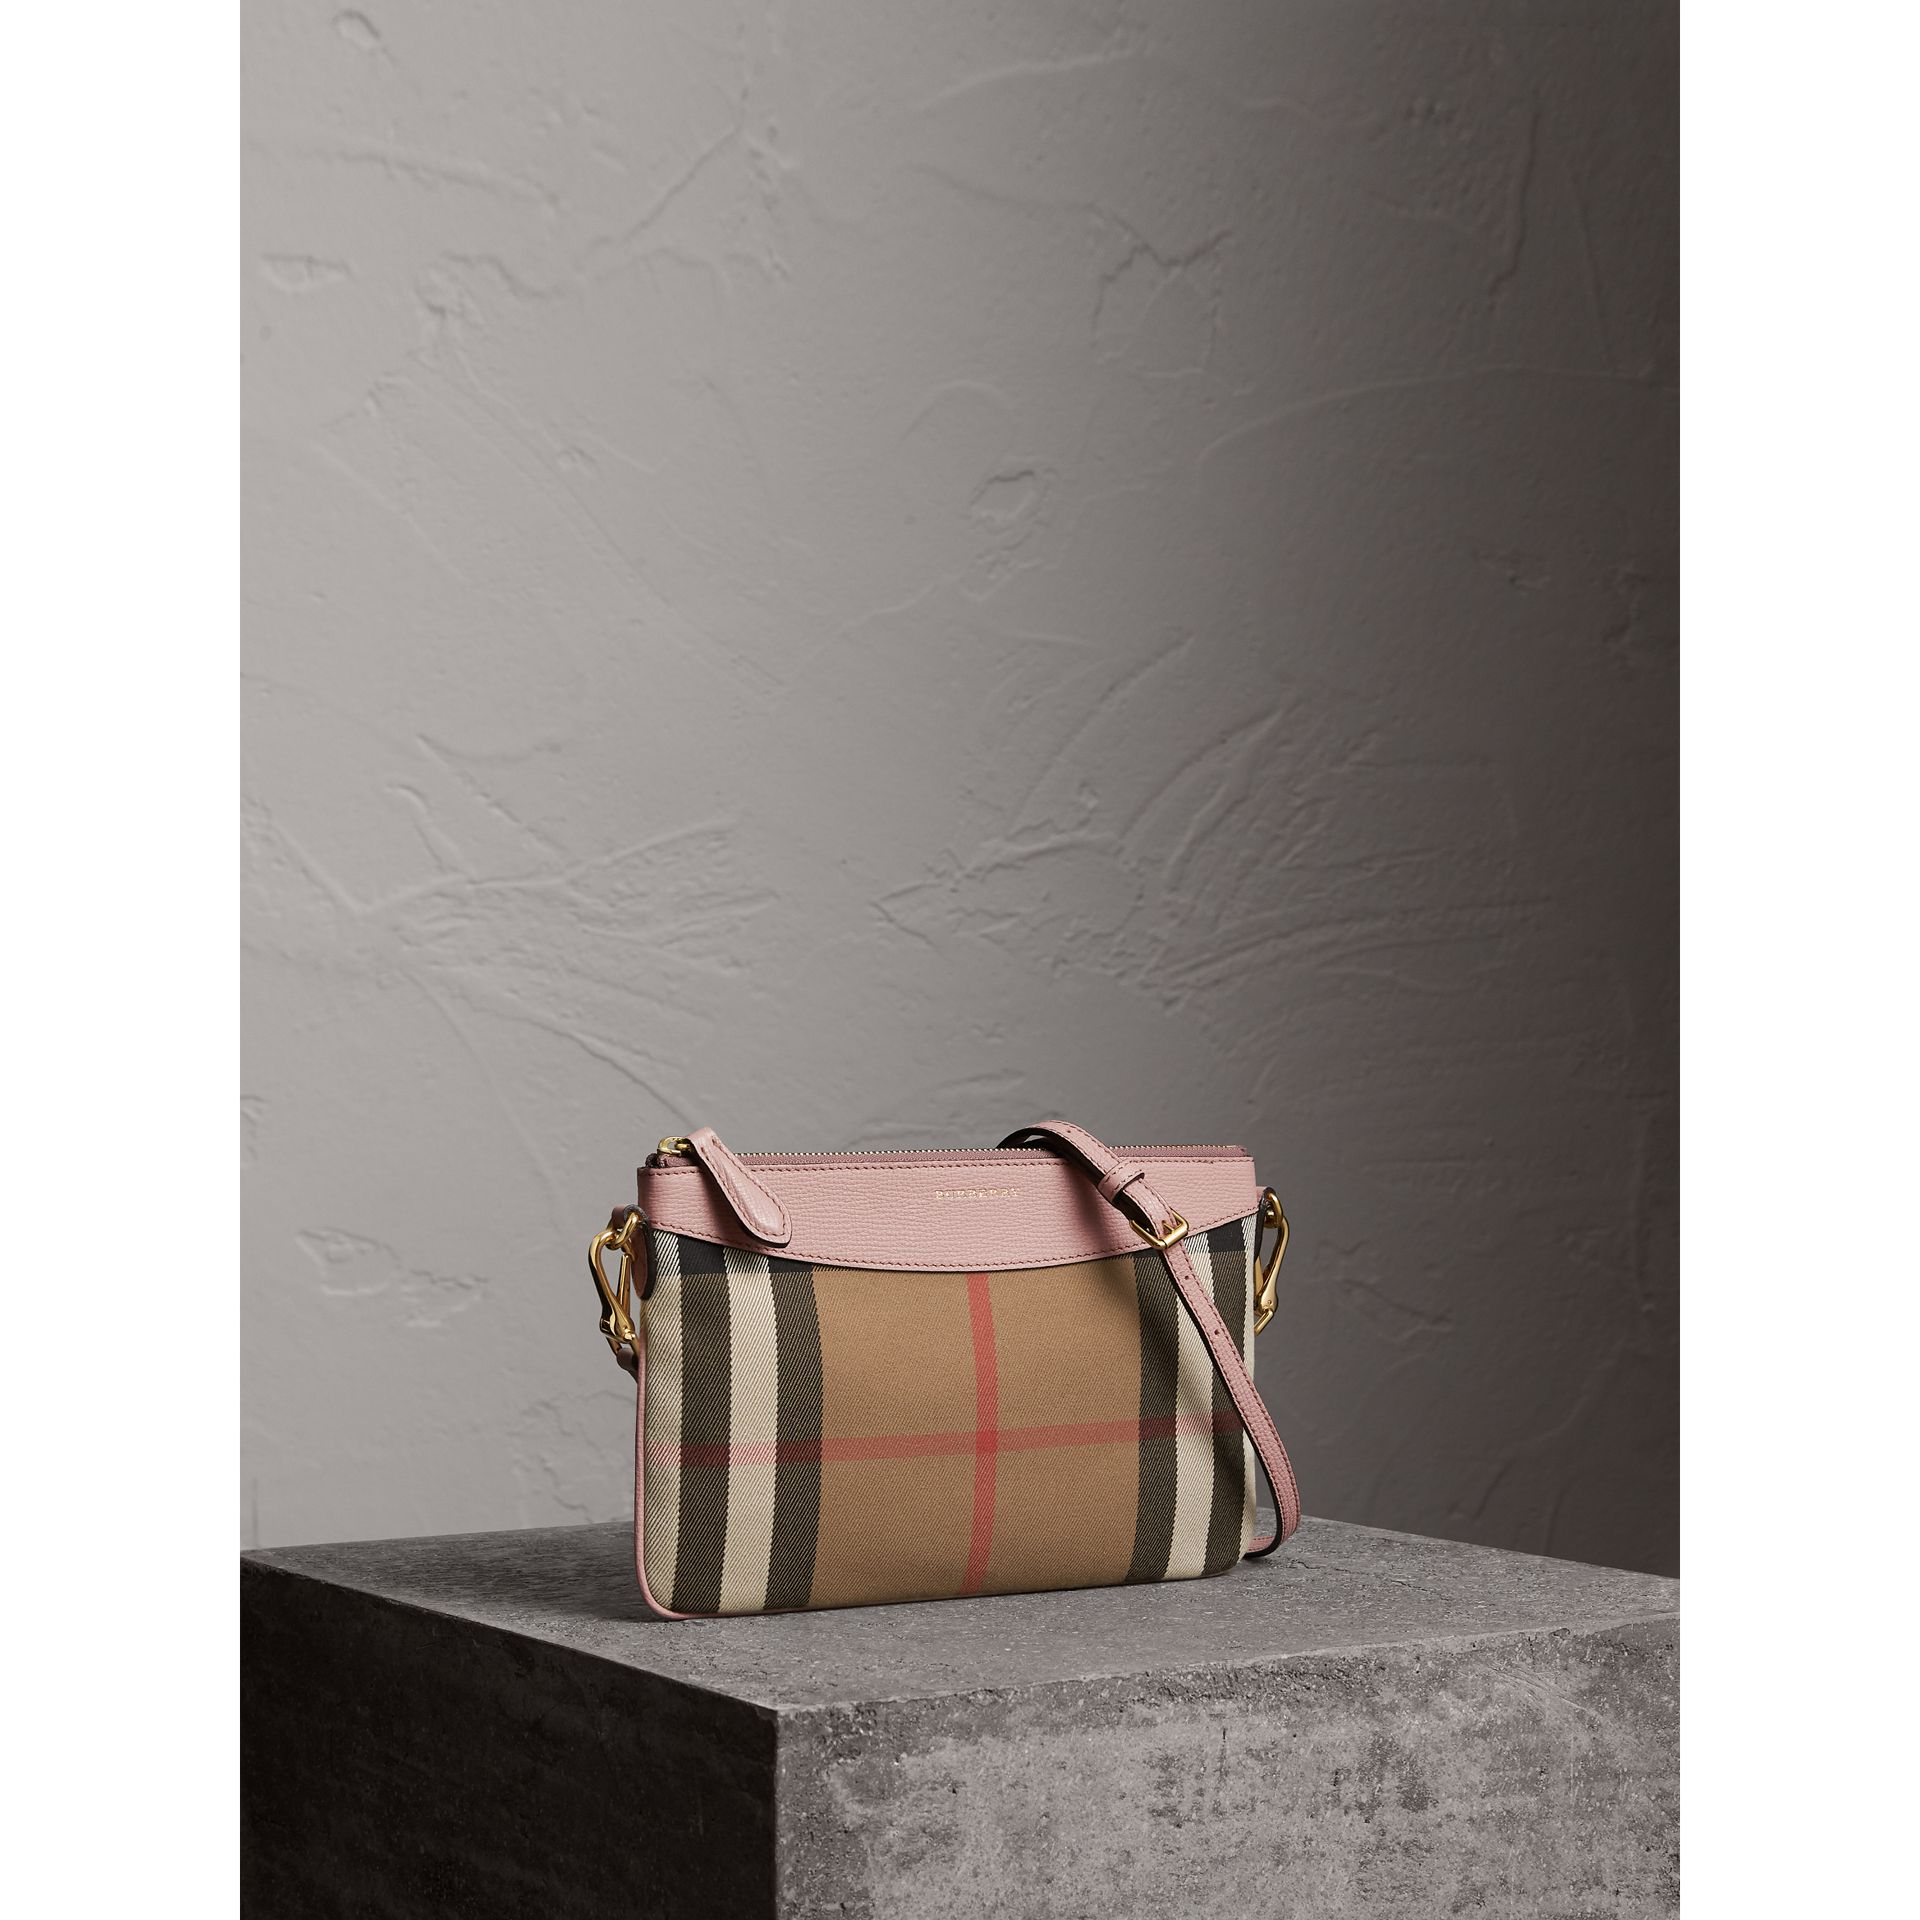 House Check and Leather Clutch Bag in Pale Orchid - Women | Burberry United States - gallery image 6